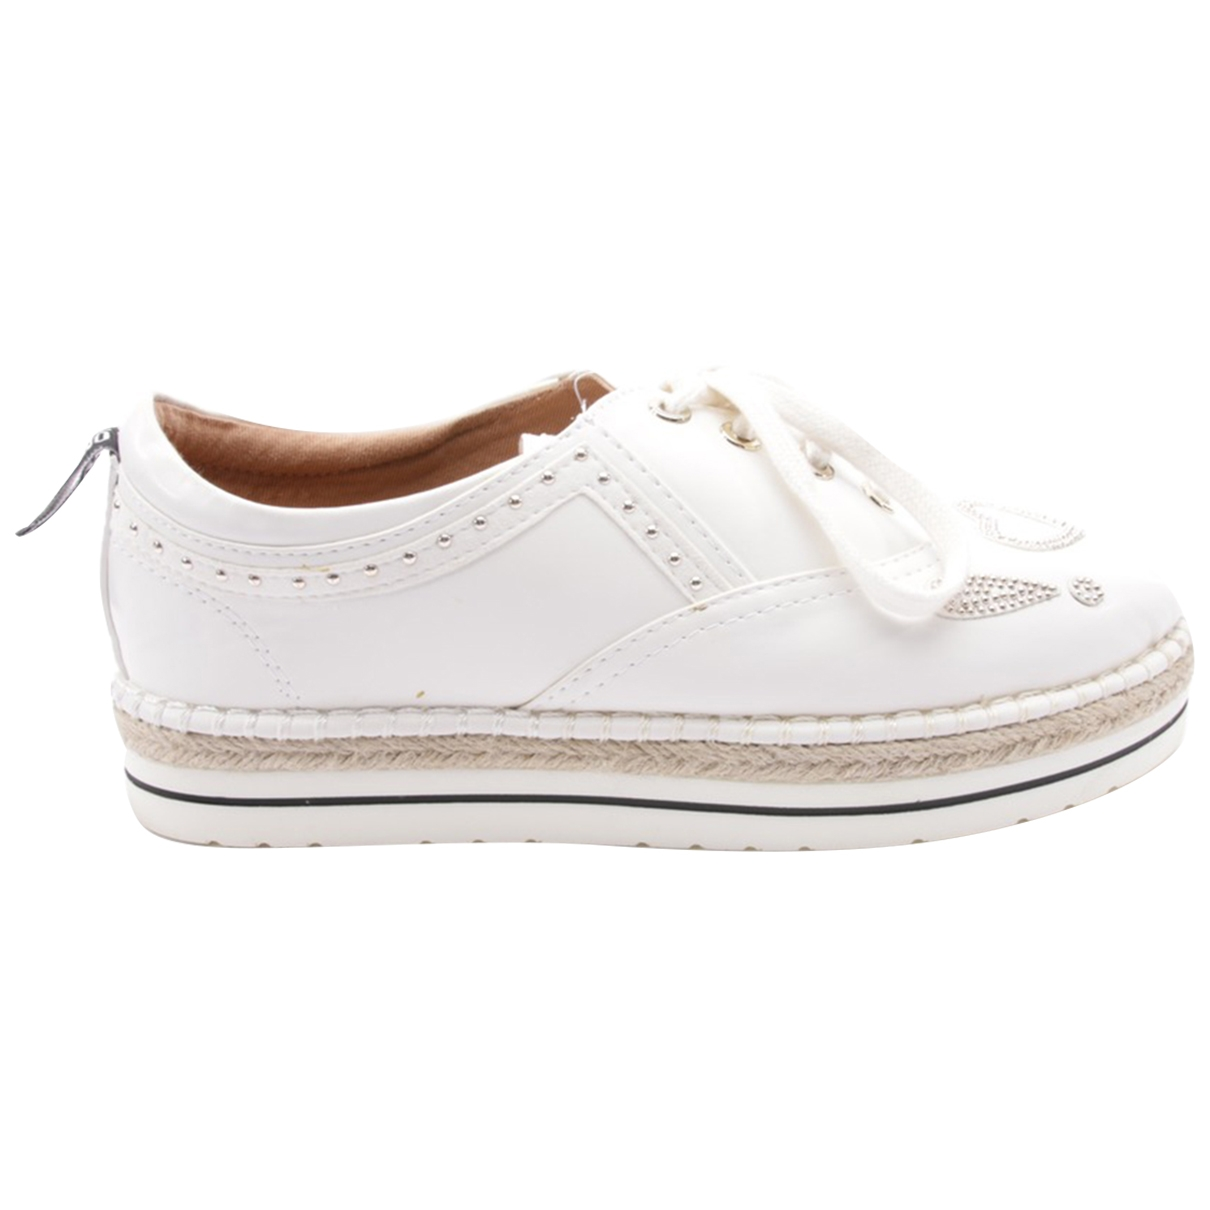 Moma \N White Leather Flats for Women 40 EU